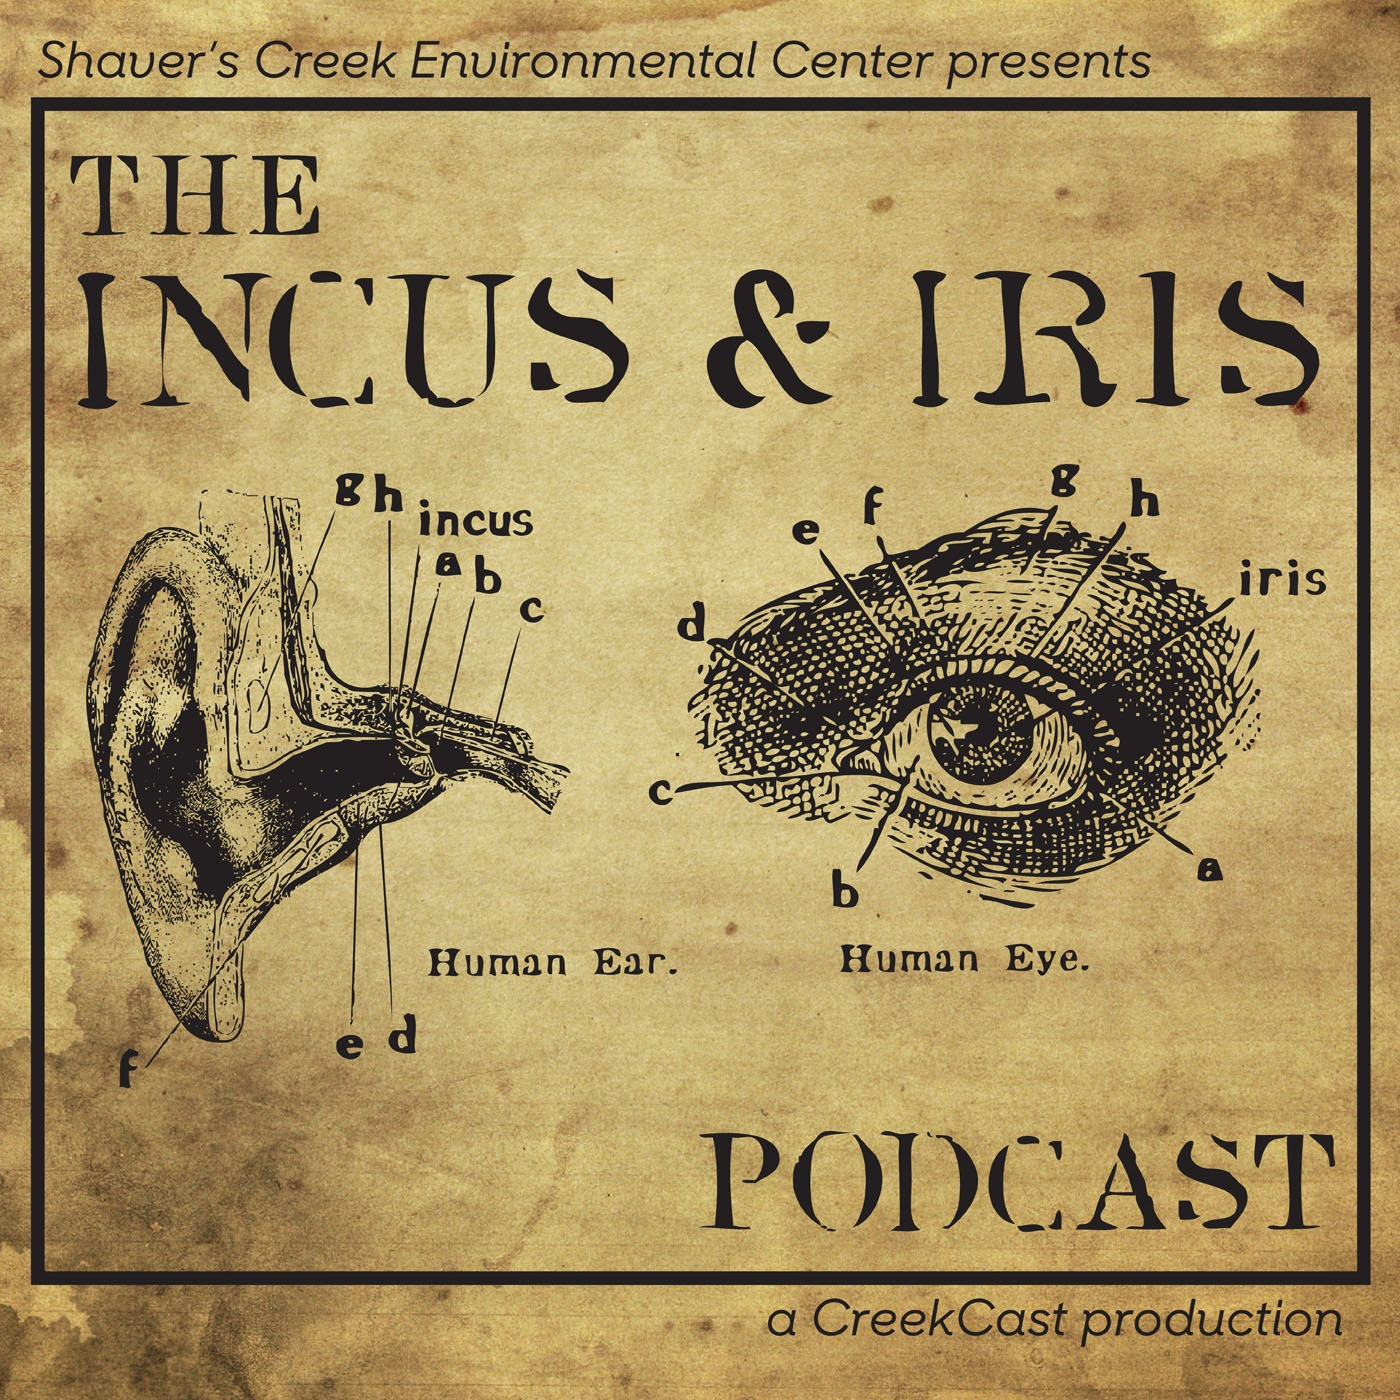 Shaver's Creek Incus & Iris Podcast